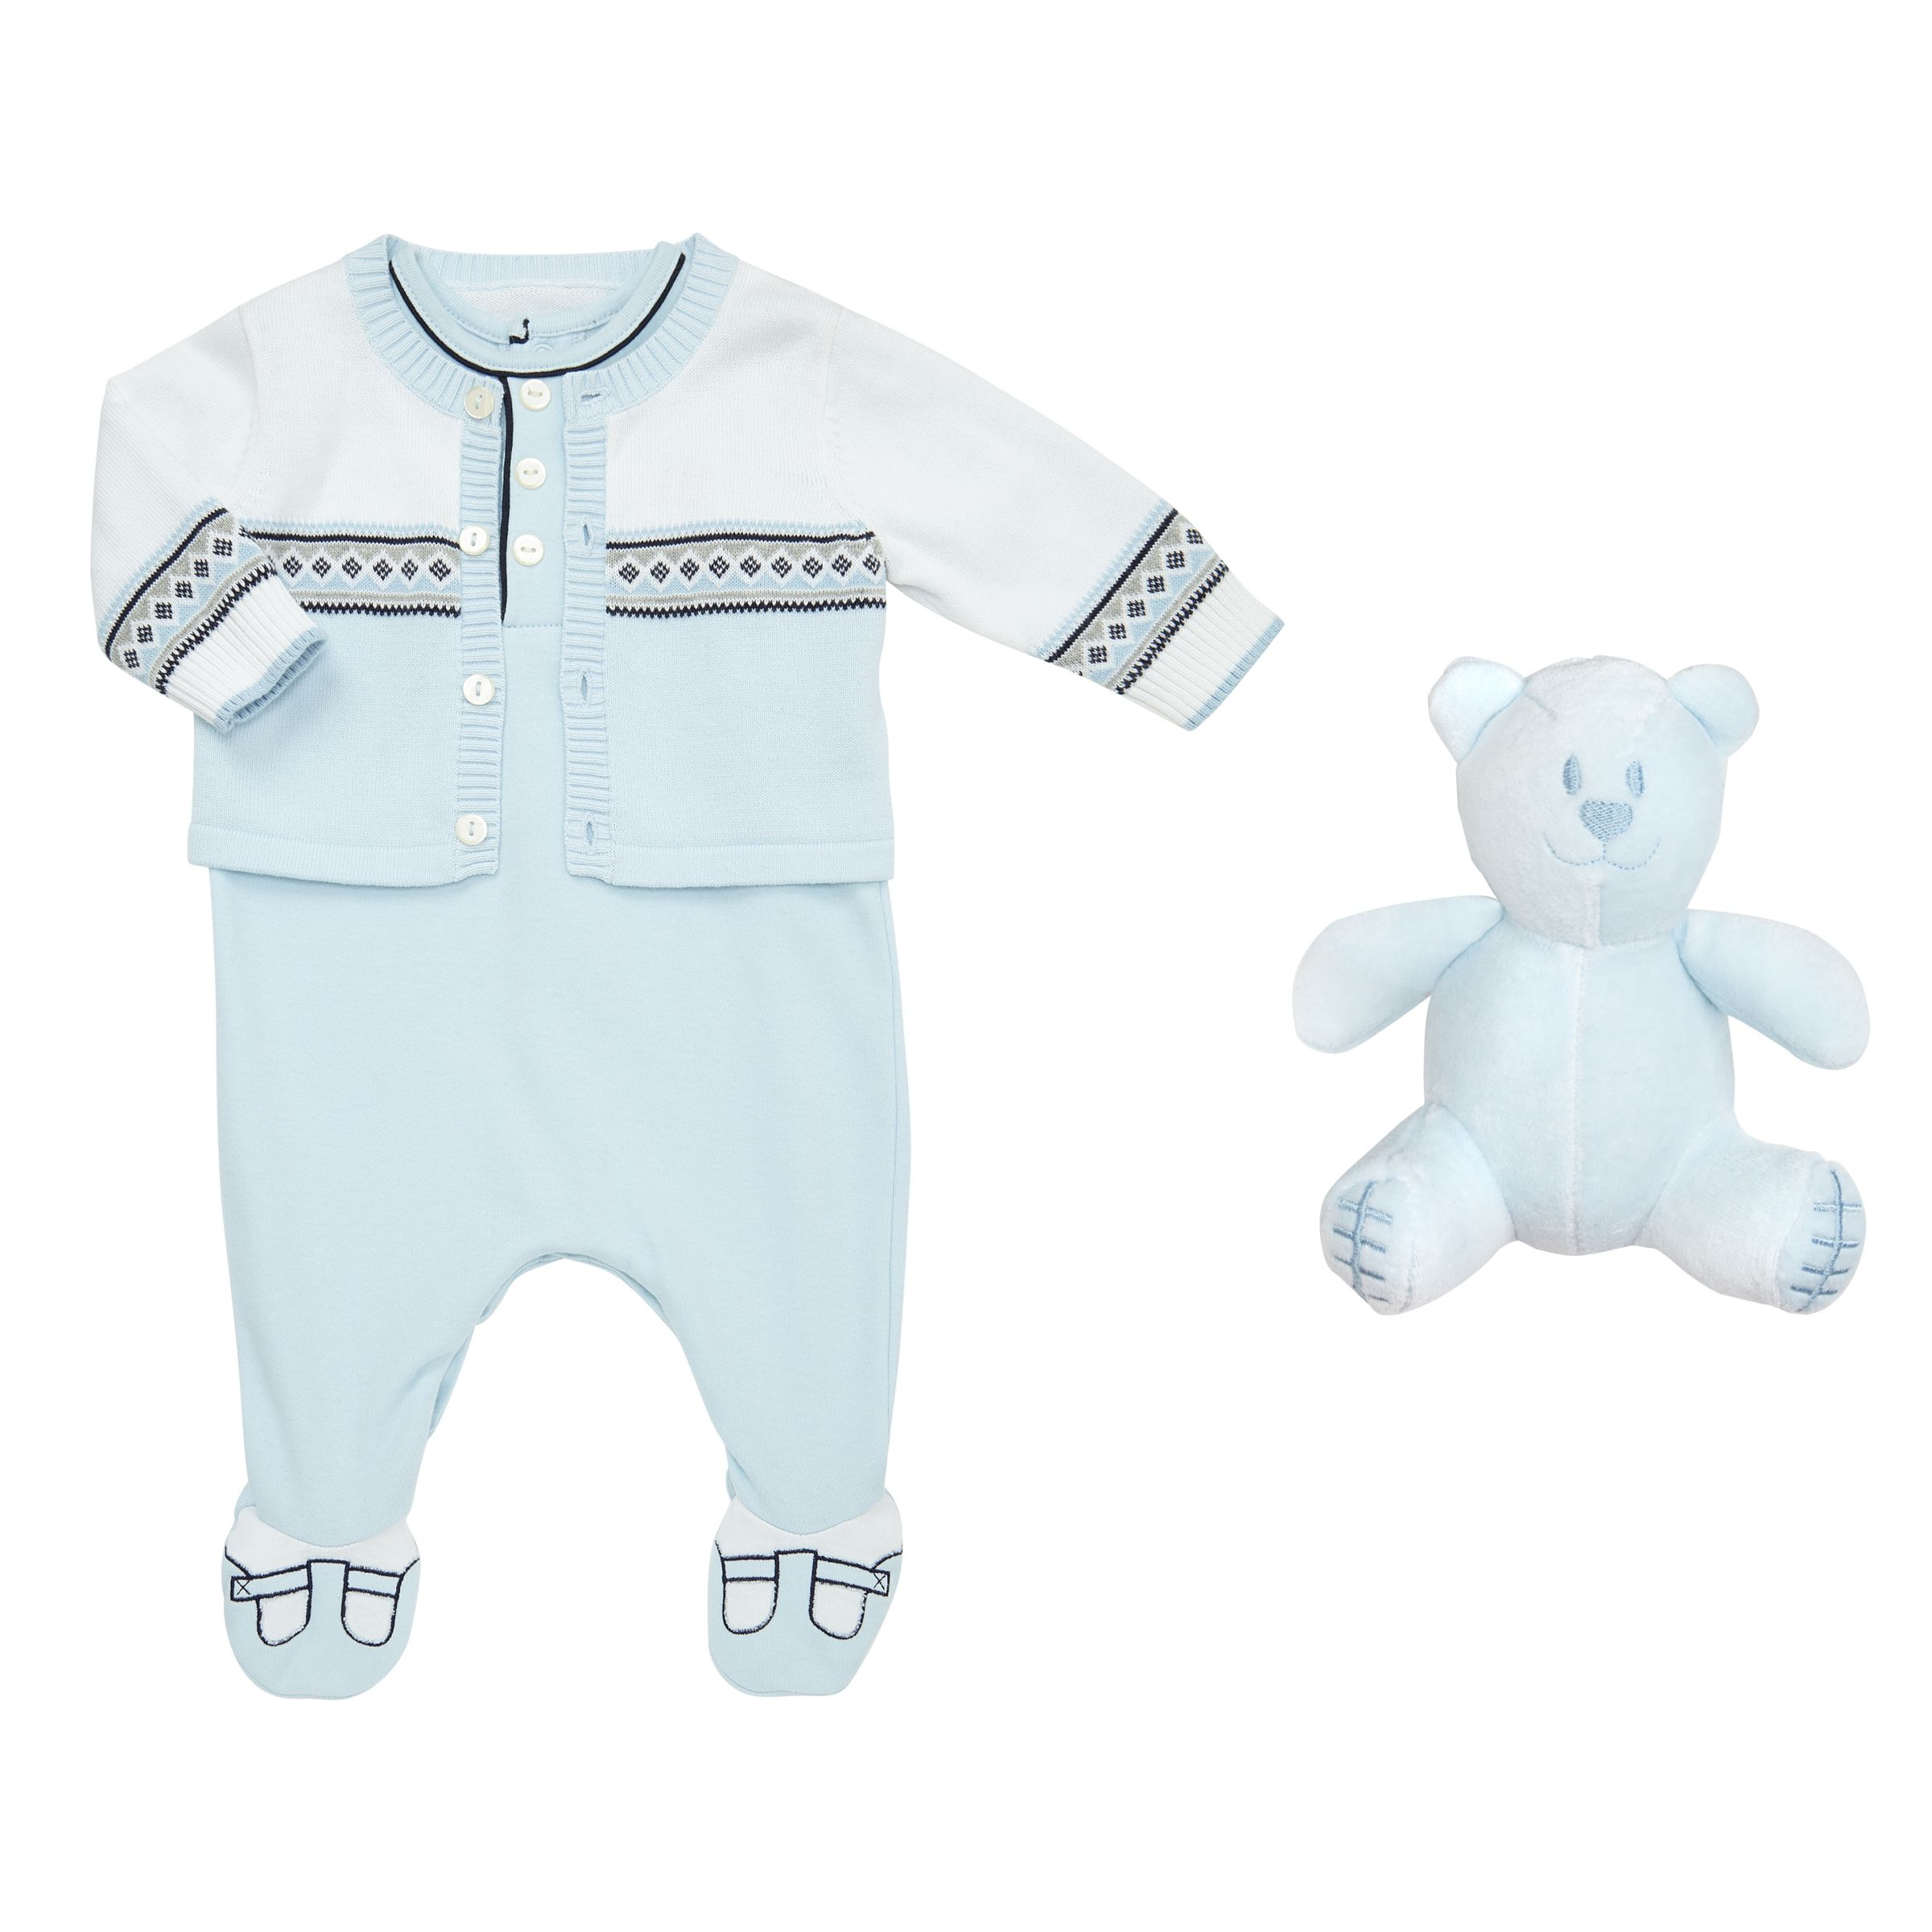 Emile et Rose Emile et Rose Justin Cardigan And Sleepsuit, Blue/White